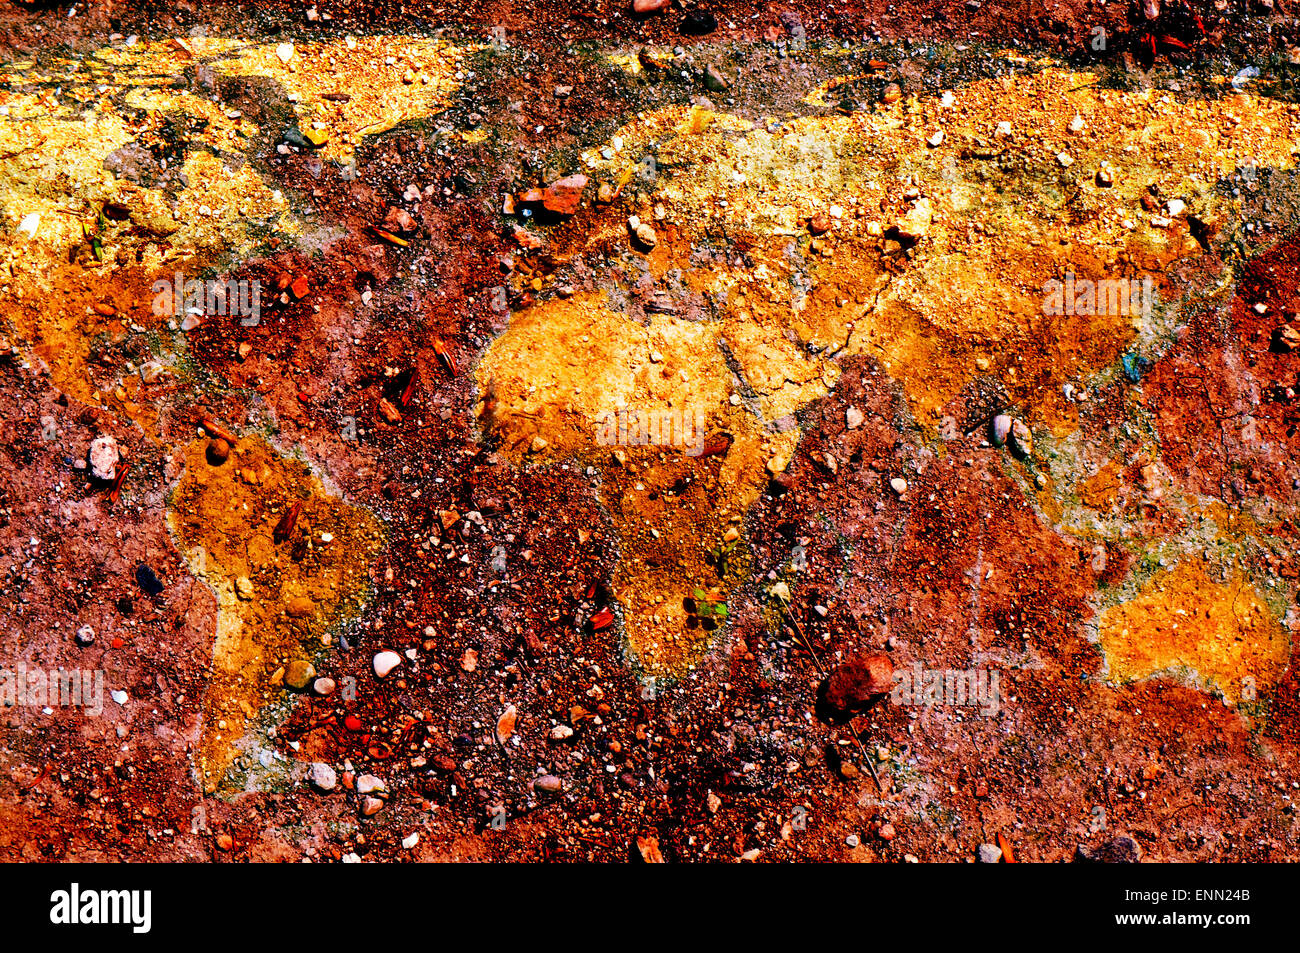 the world map depicted on the ground - Stock Image